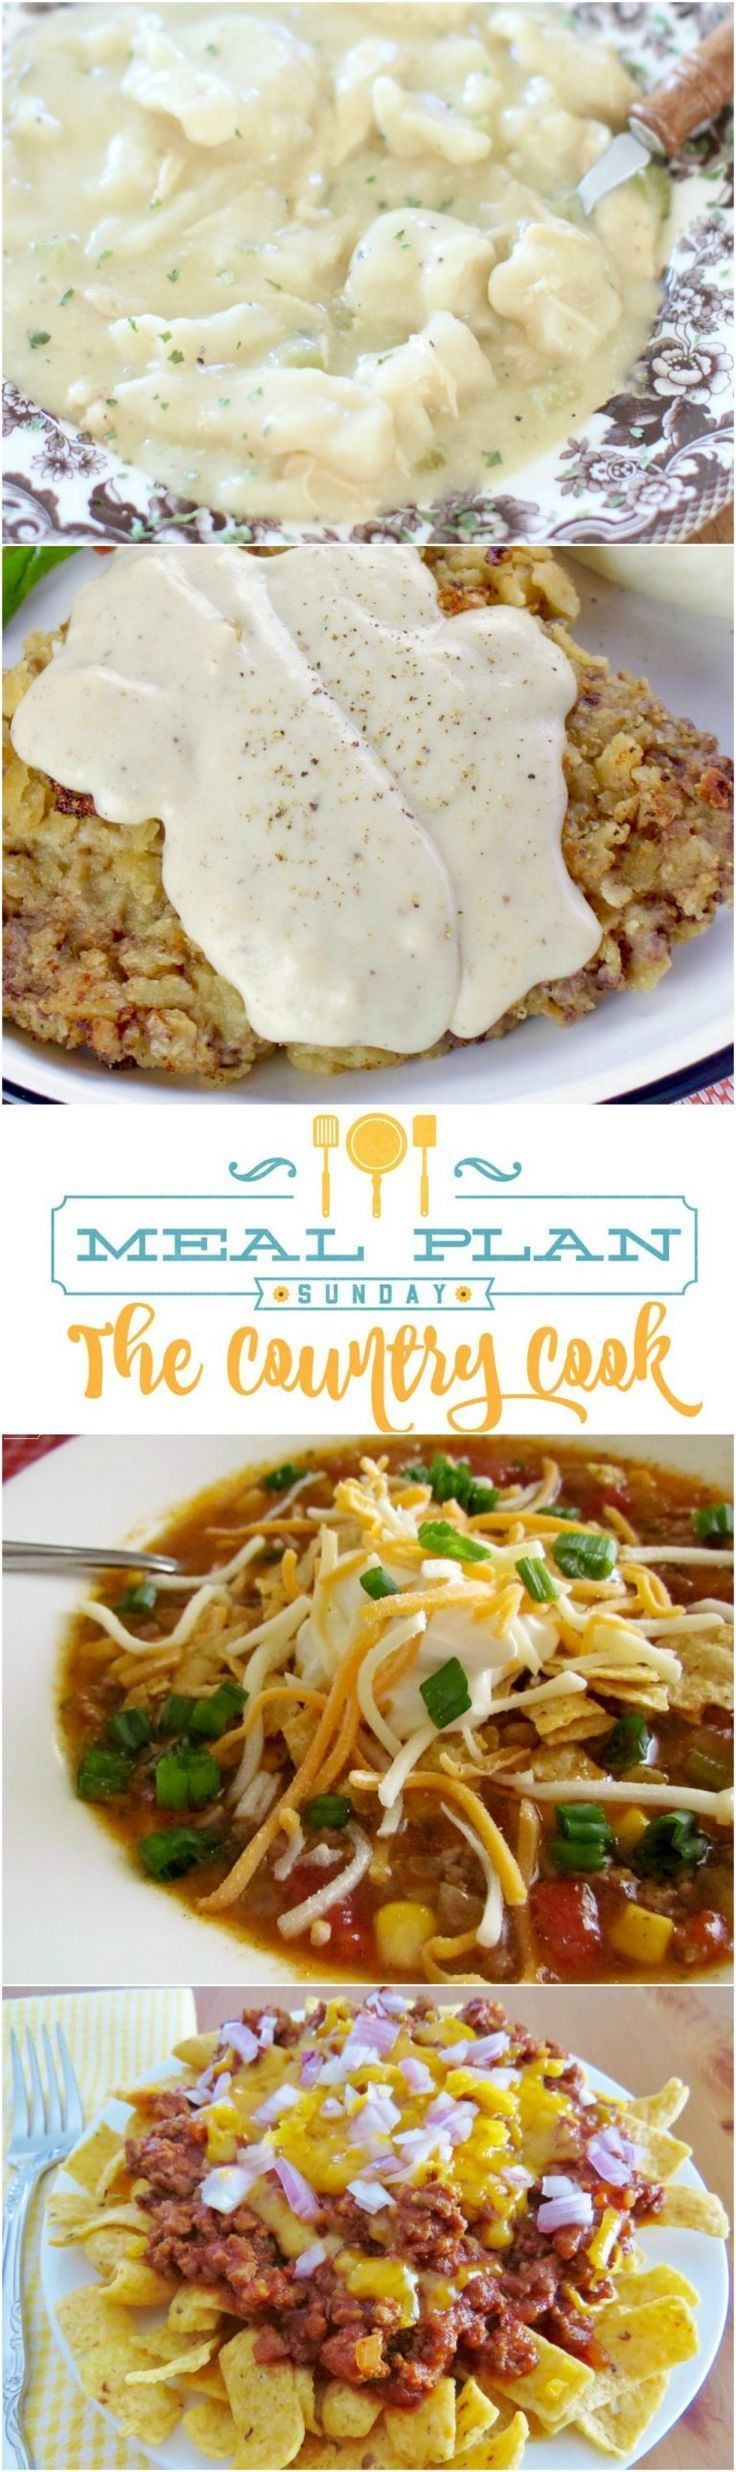 Meal Plan recipes include: Crock Pot Chicken & Dumplings, Crock Pot Taco Soup, Chicken Fried Steak and Gravy, Frito Chili Pie, Mexican-Style Rice, Banana Cream Pie, Crock Pot Carnitas #chickendumplingscrockpot Meal Plan recipes include: Crock Pot Chicken & Dumplings, Crock Pot Taco Soup, Chicken Fried Steak and Gravy, Frito Chili Pie, Mexican-Style Rice, Banana Cream Pie, Crock Pot Carnitas #chickendumplingscrockpot